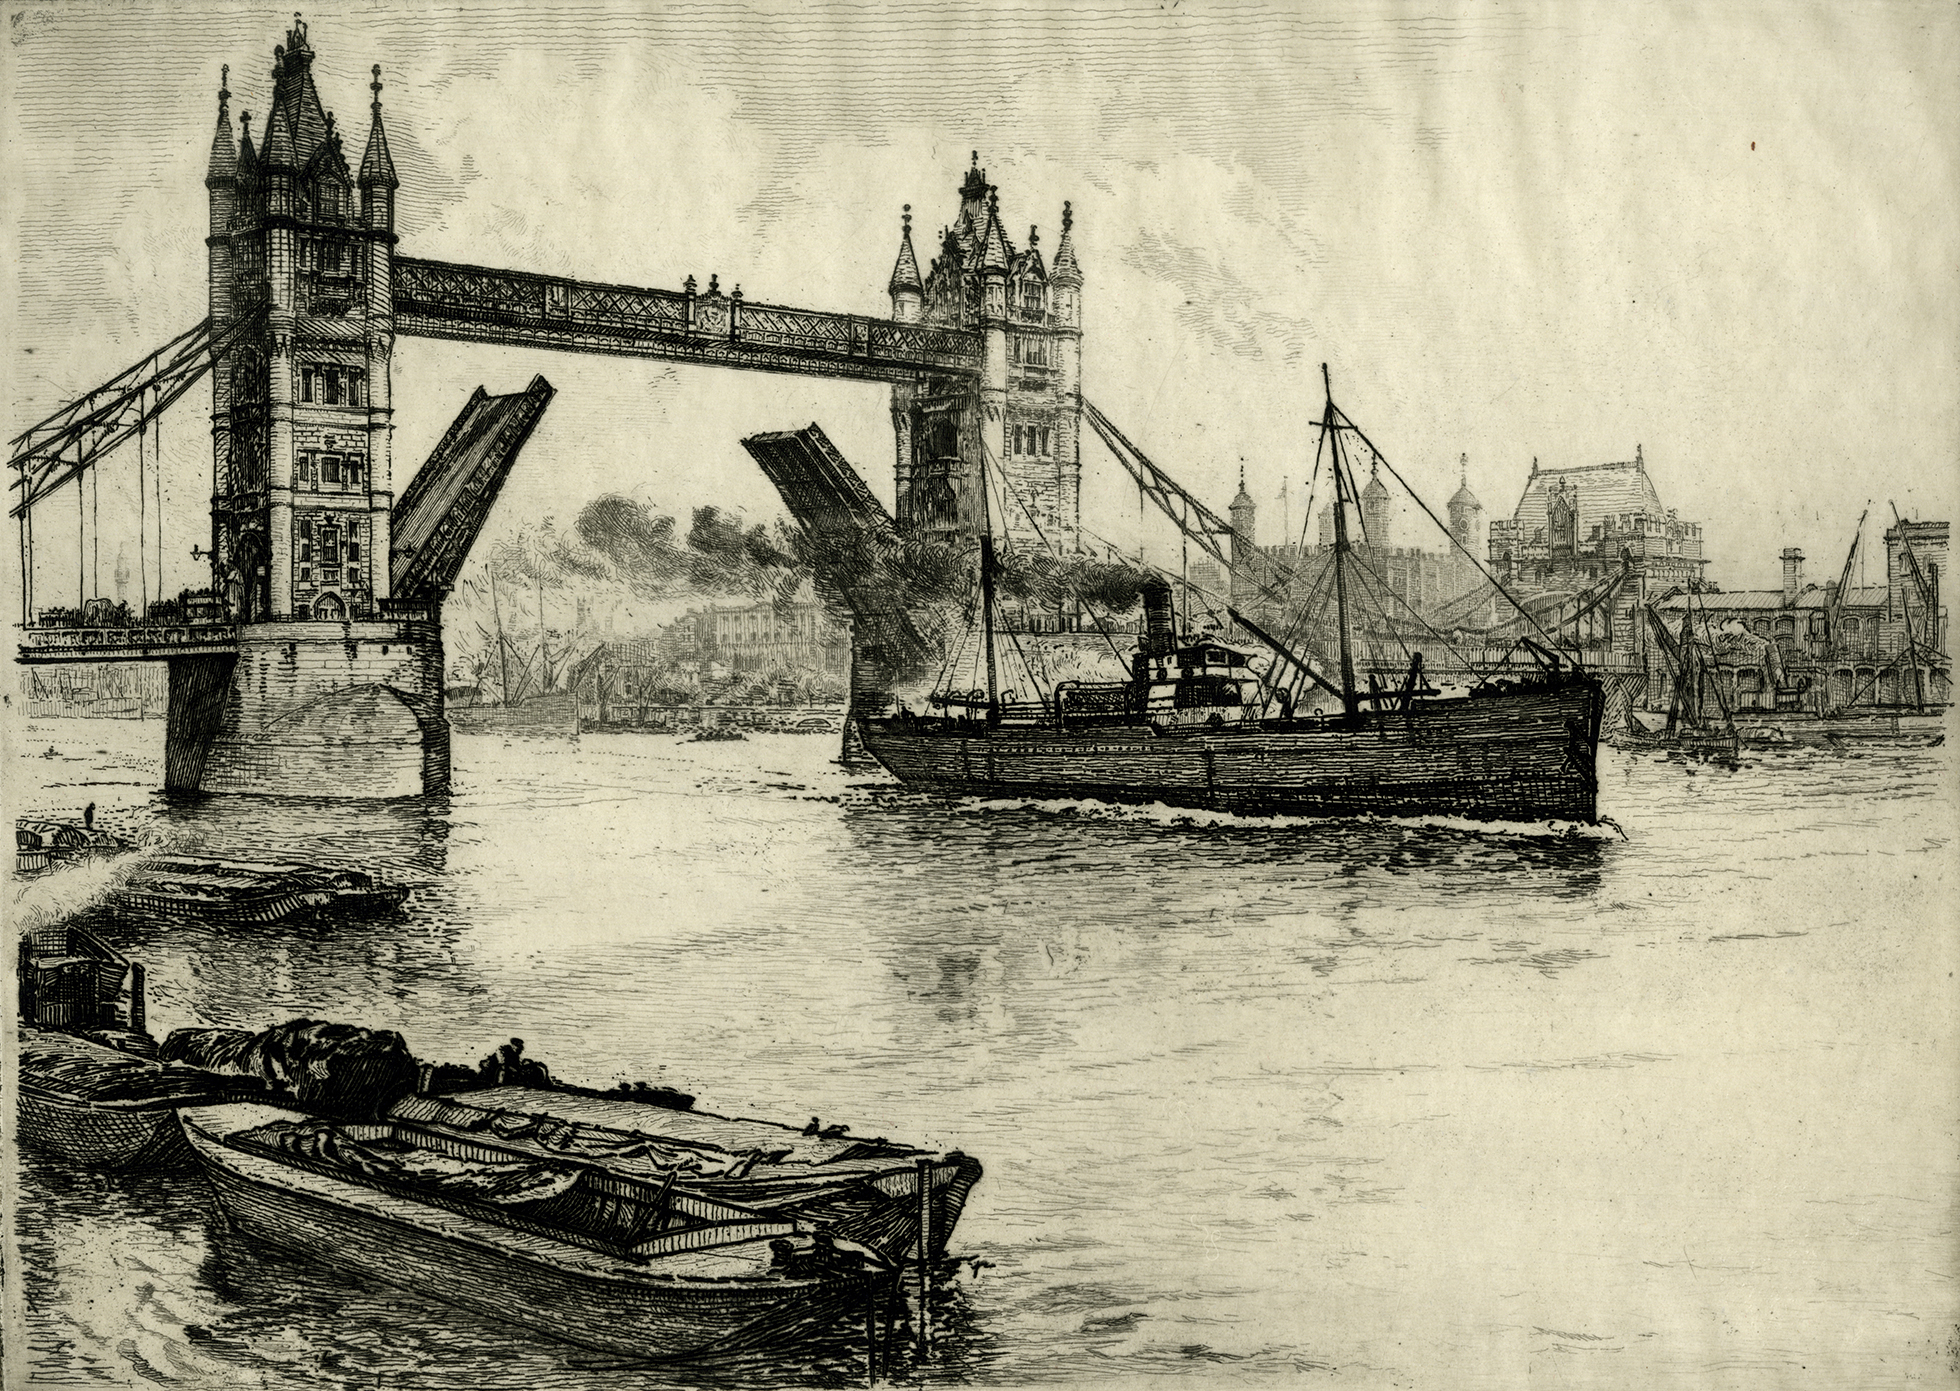 A view of Tower Bridge with gates open for a cargo steamship to pass, from right to left. There are moored boats in foreground to the left, and the Tower and other buildings are seen on the opposite bank.